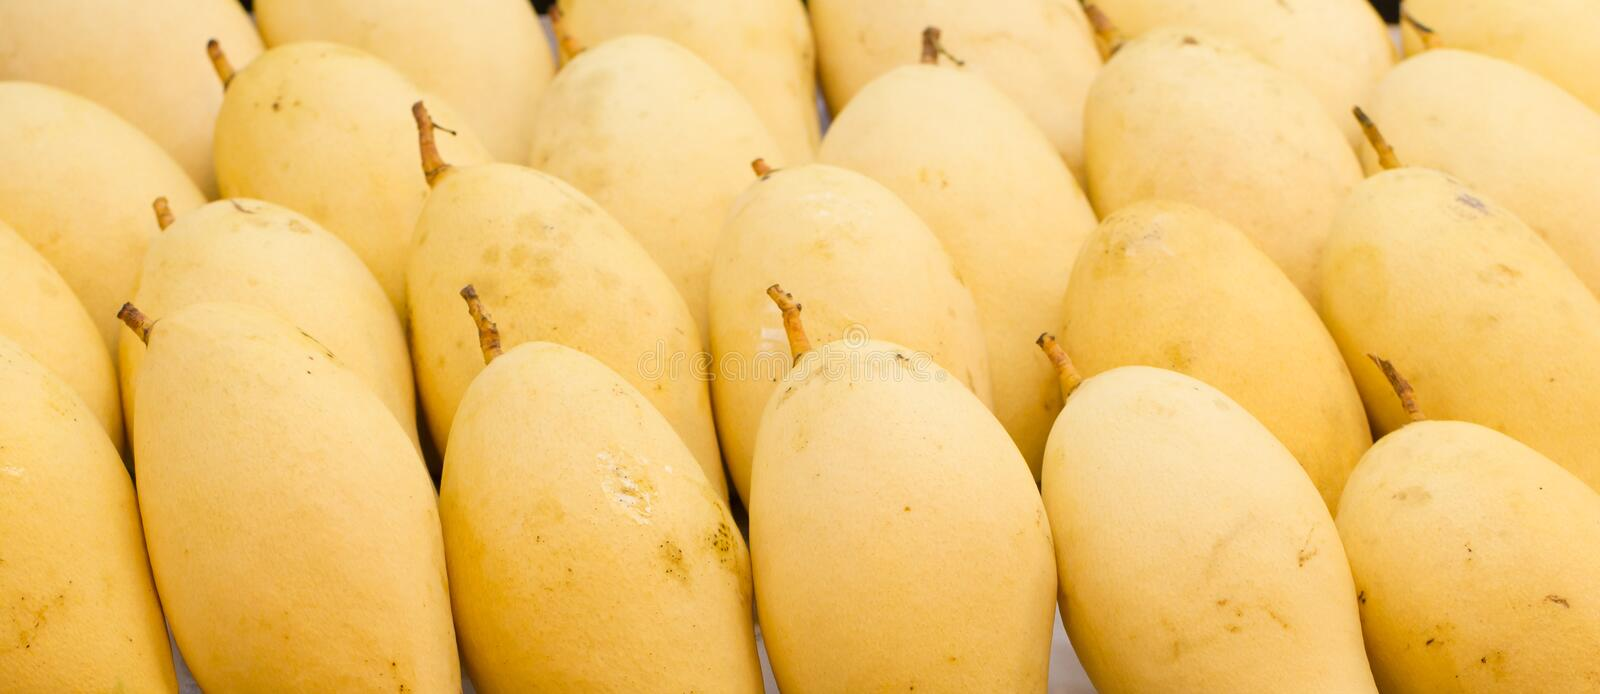 Yellow Mango in Market royalty free stock images